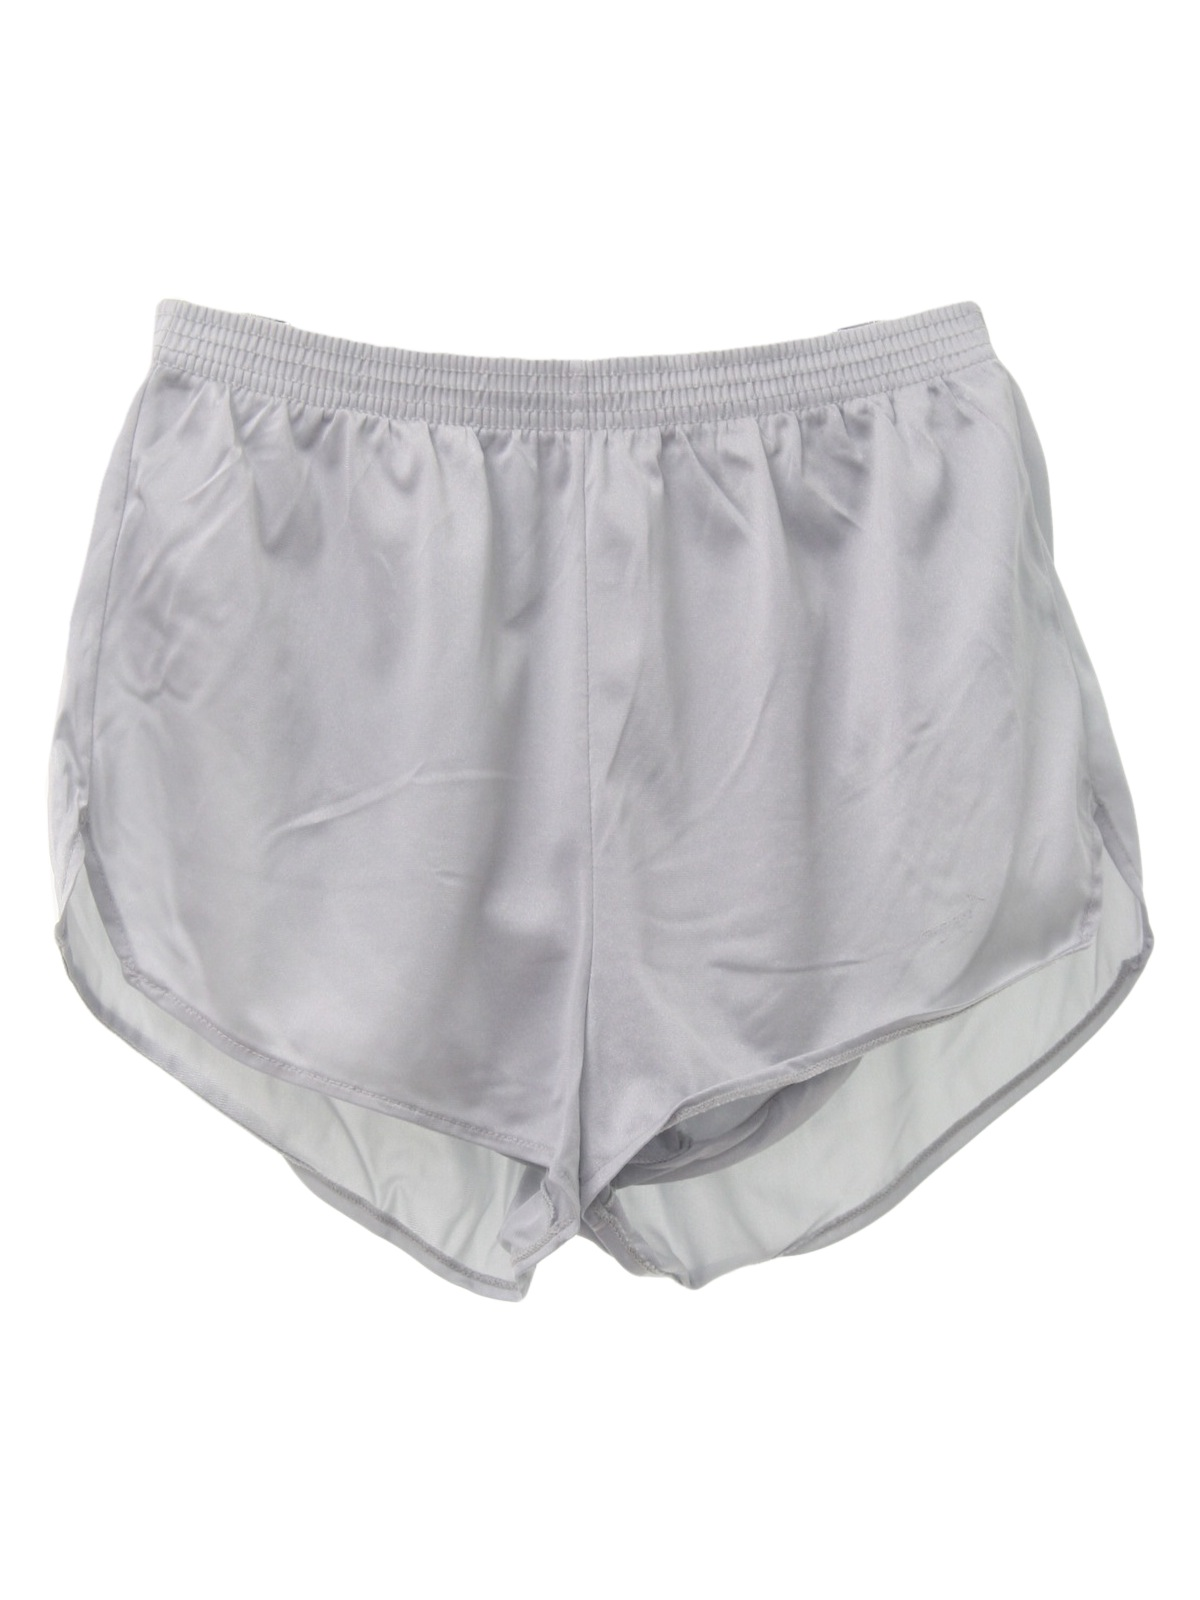 80 u0026 39 s care label shorts  80s -care label- mens shiny silver background nylon on nylon